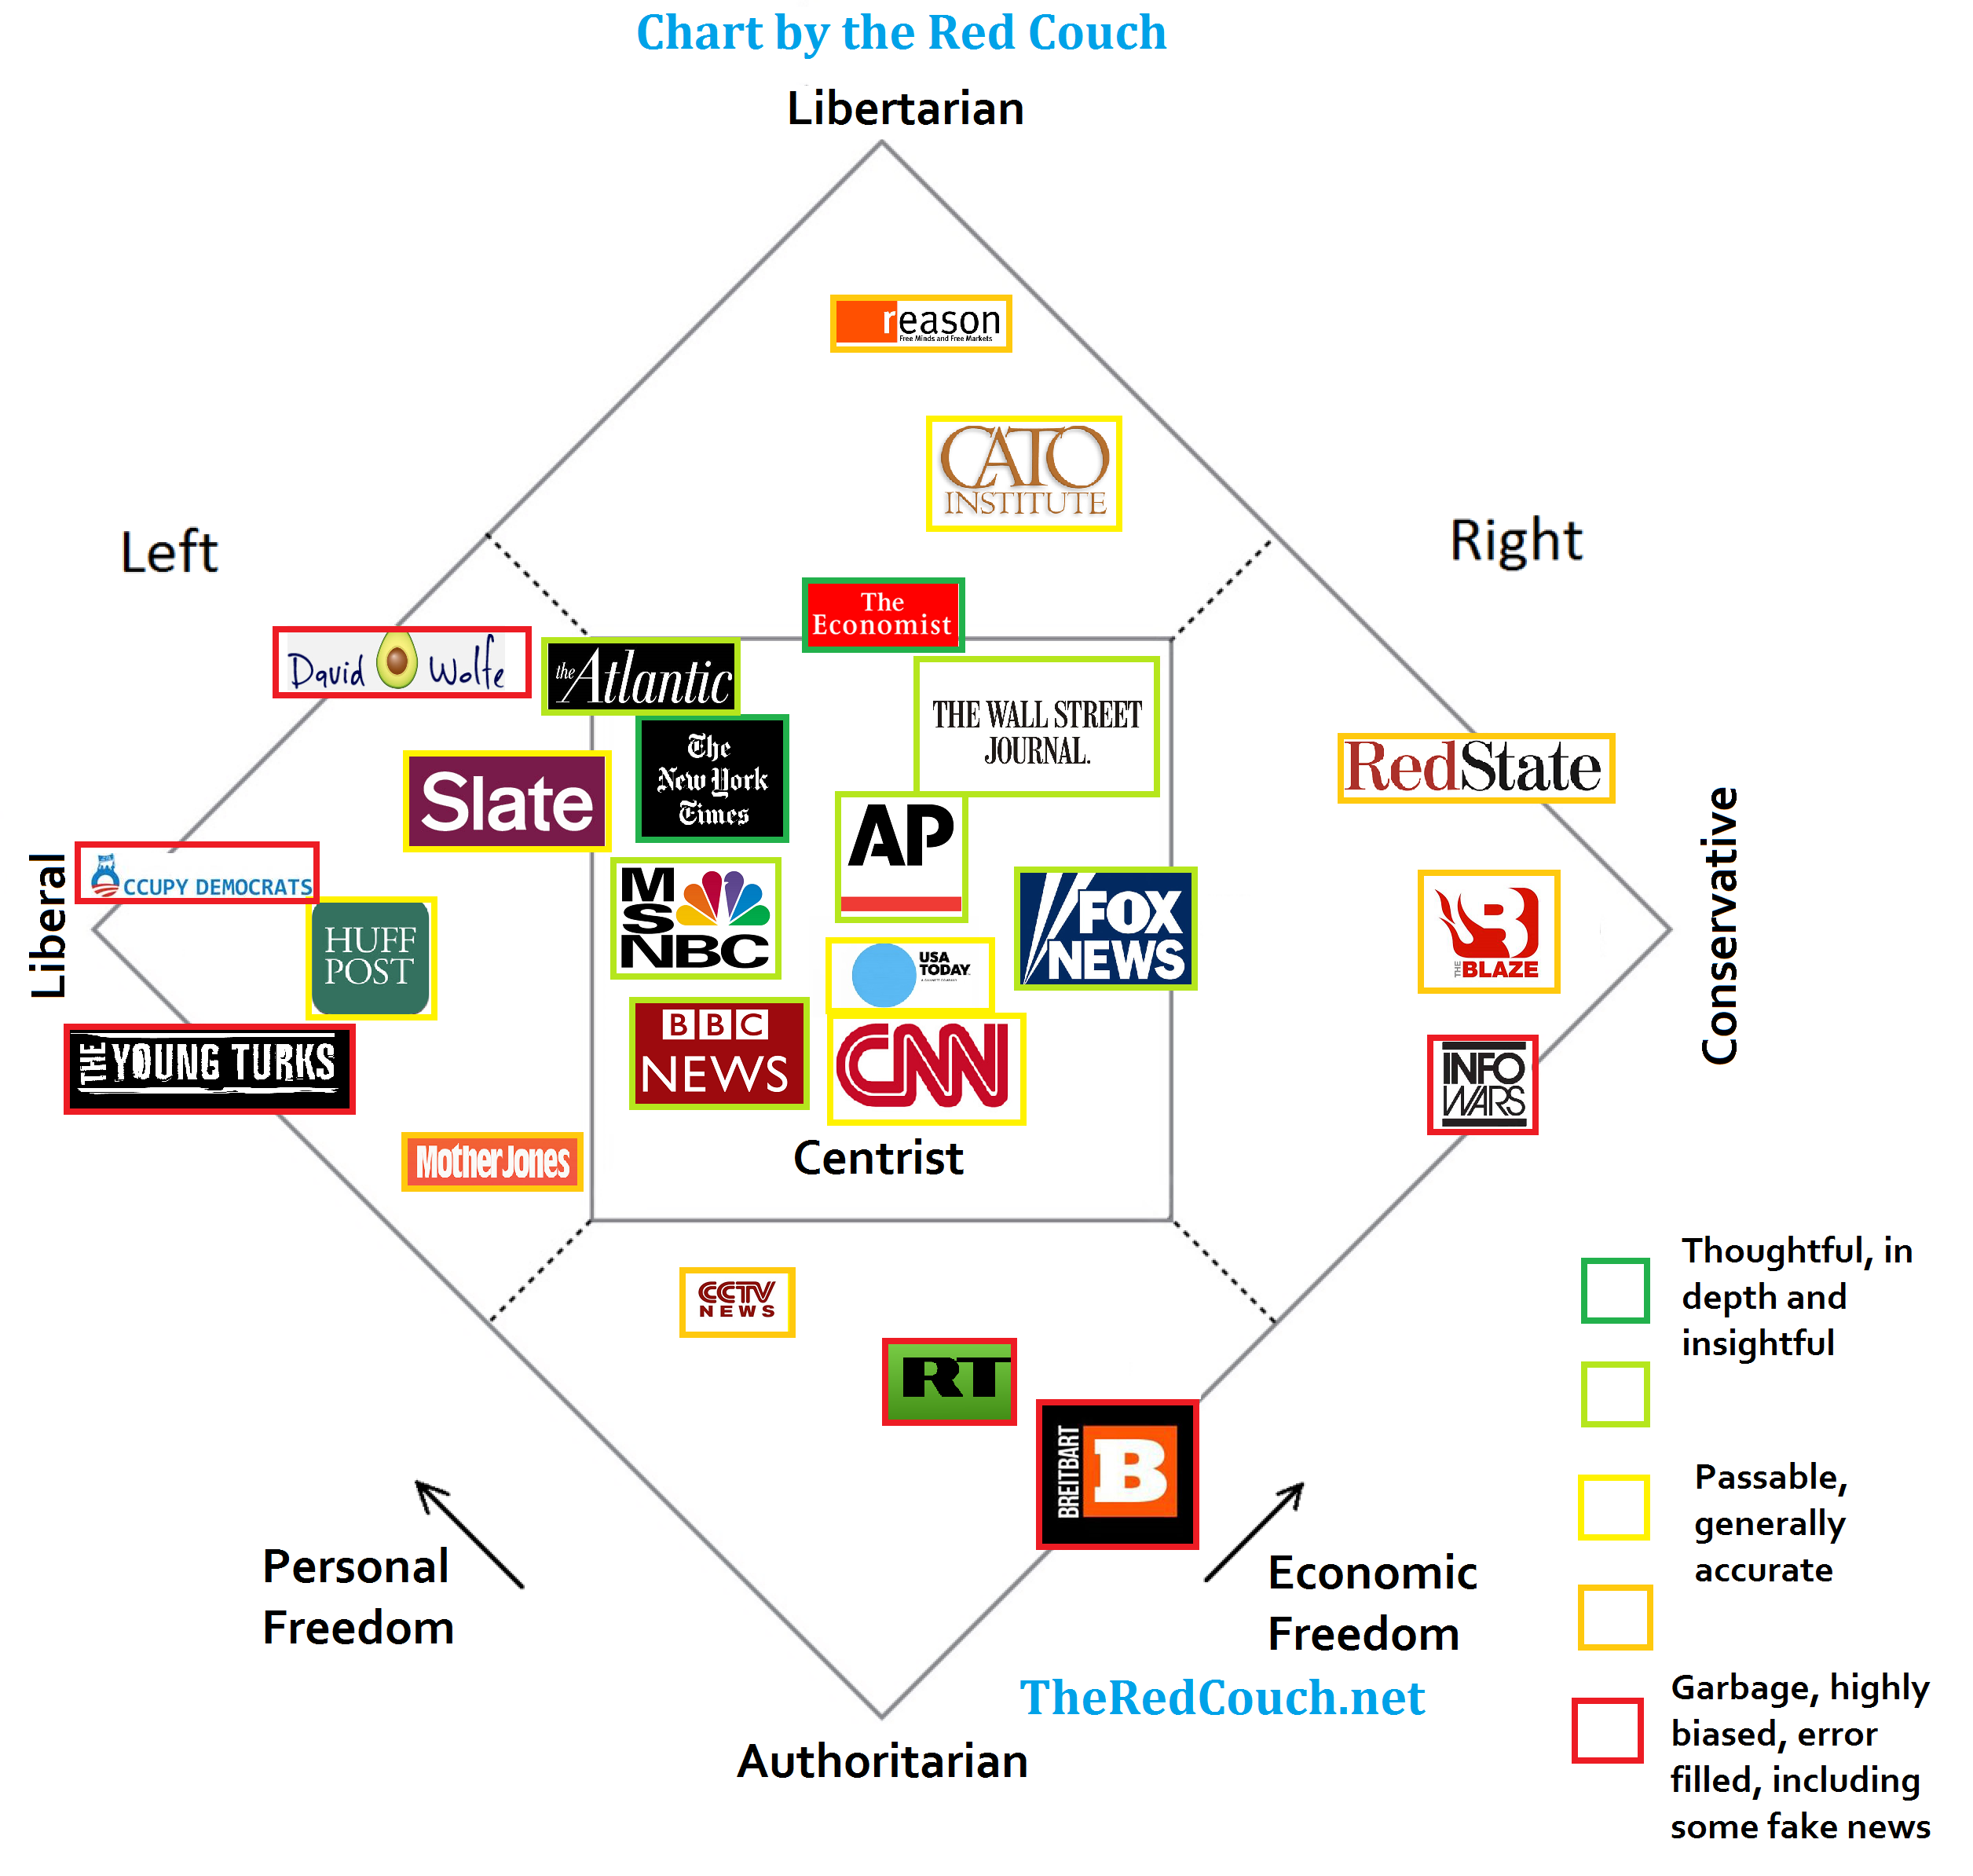 Media Bias Chart With More Than One Political Dimension